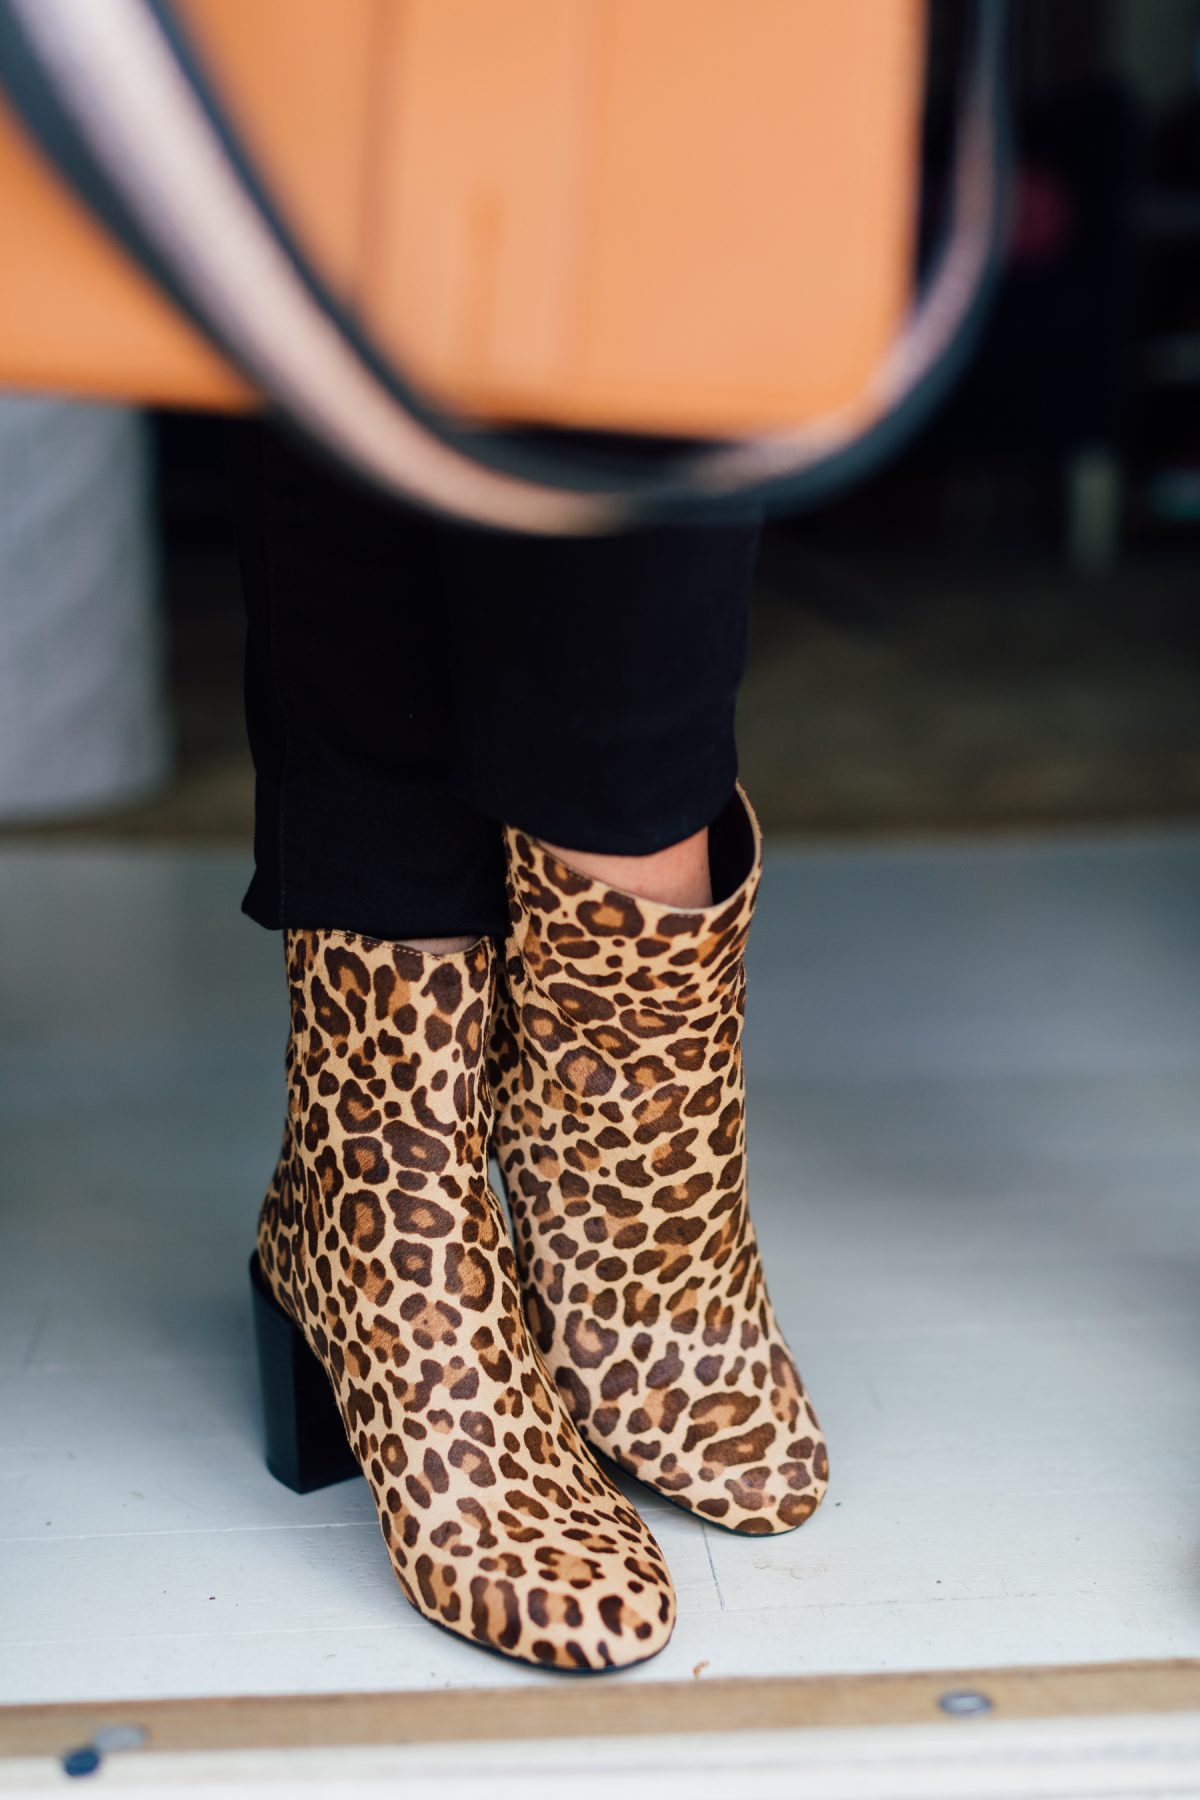 Leopard Print Booties with a Block Heels and Black Denim